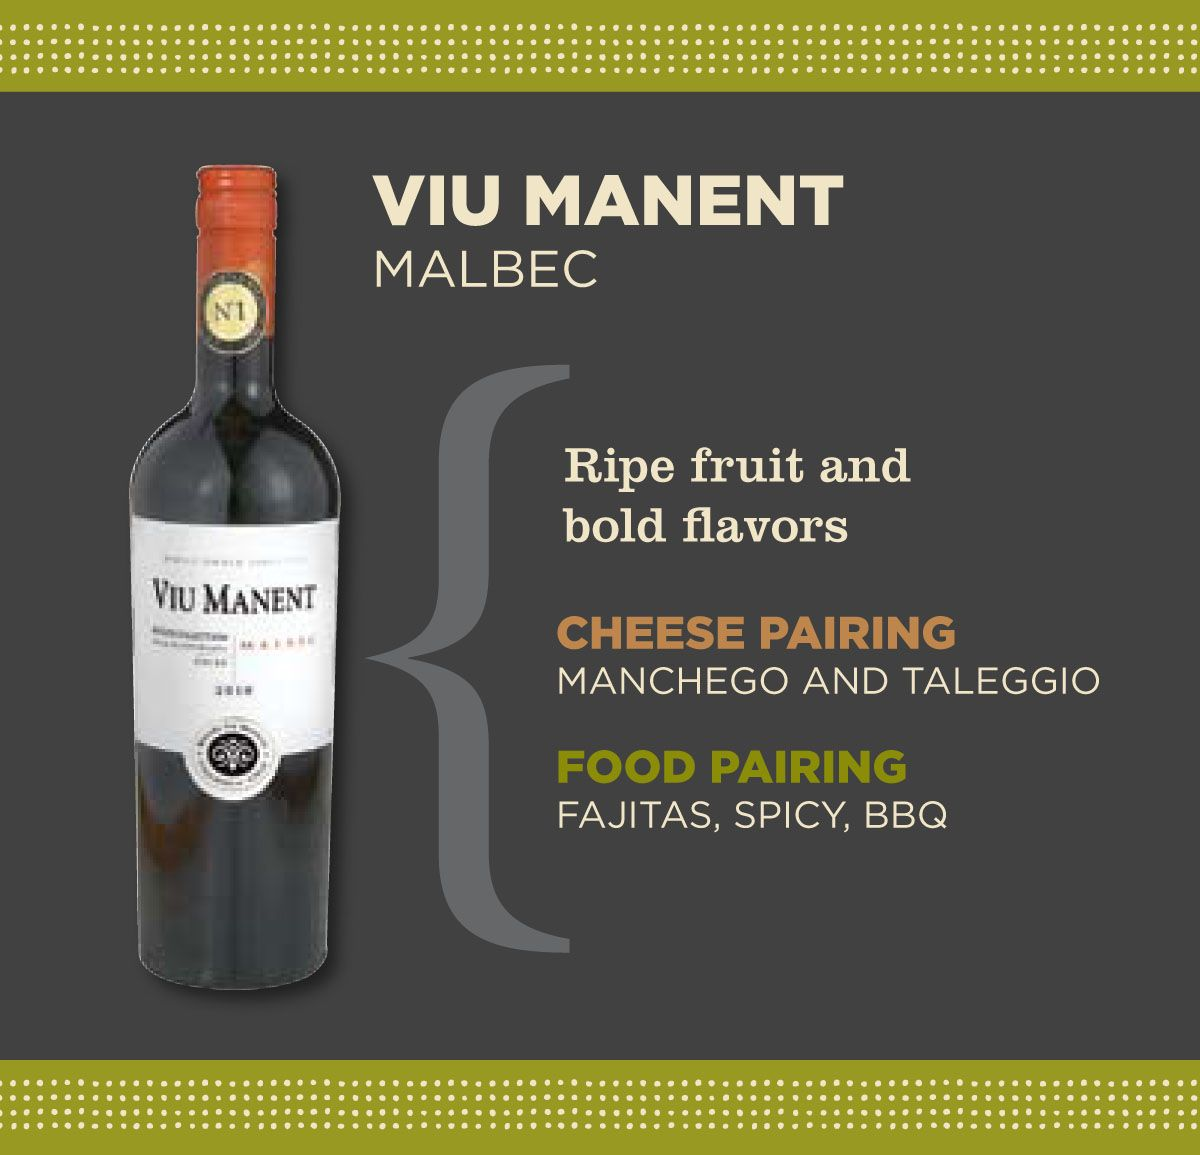 Viu Manent Malbec Wine Combines Bold Flavors To Compliment Texas Staples Bbq Spicy Food Fajitas Spicy Recipes Wine Suggestions Favorite Wine